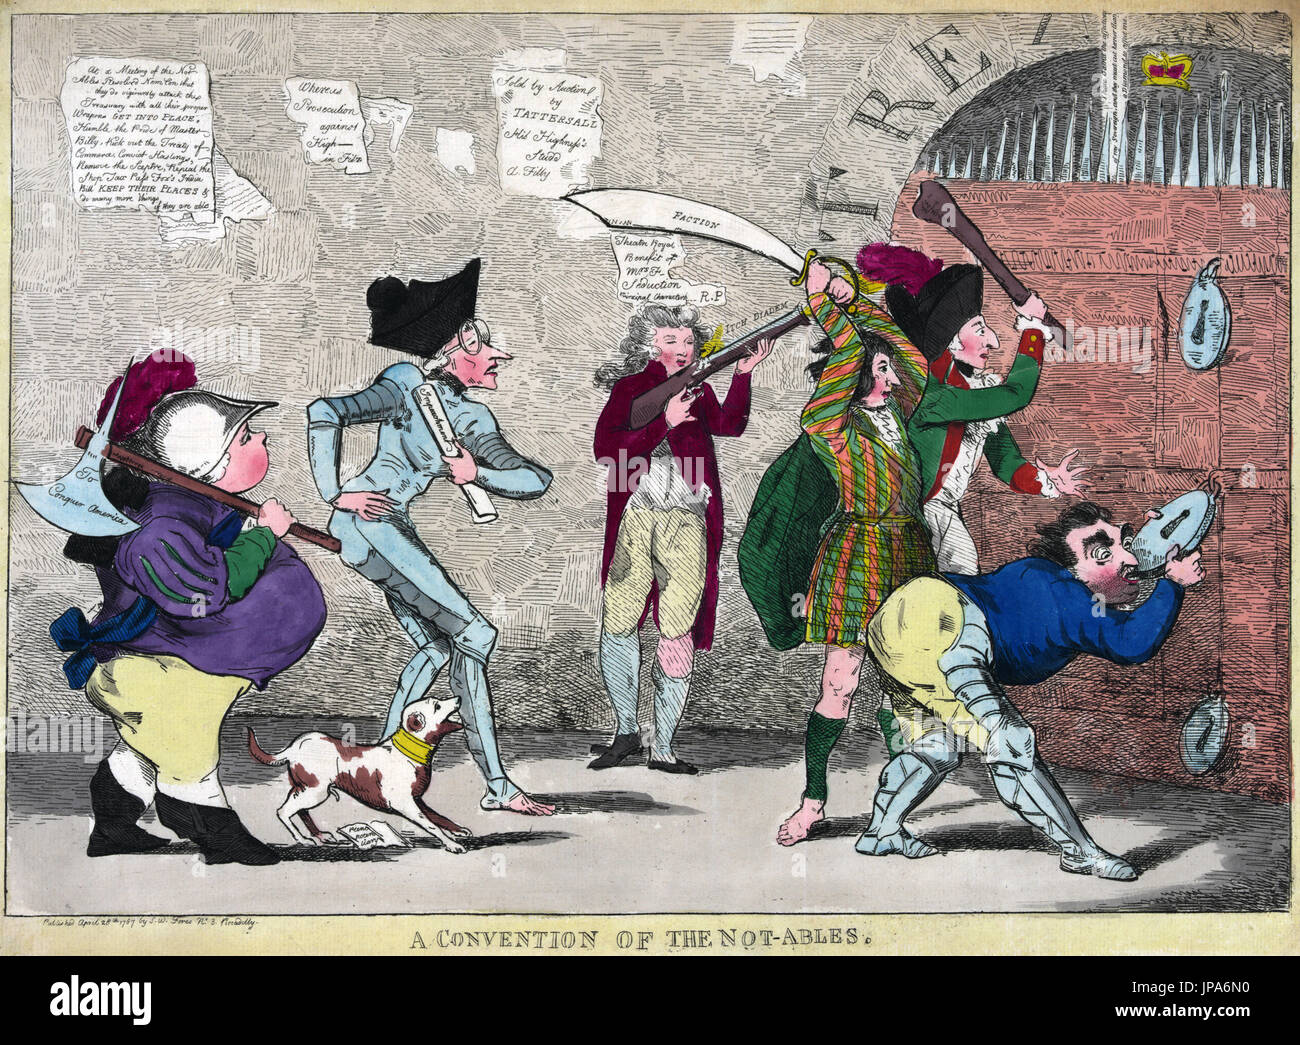 GEORGE CRUIKSHANK (1792-1878) English illustrator.  'A Convention of the Not-Ables' . Cartoon from 1787  showing Edmund Burke, Charles Fox. Lord North, the Prince of Wales and others trying to break into the Royal Treasury - Stock Image